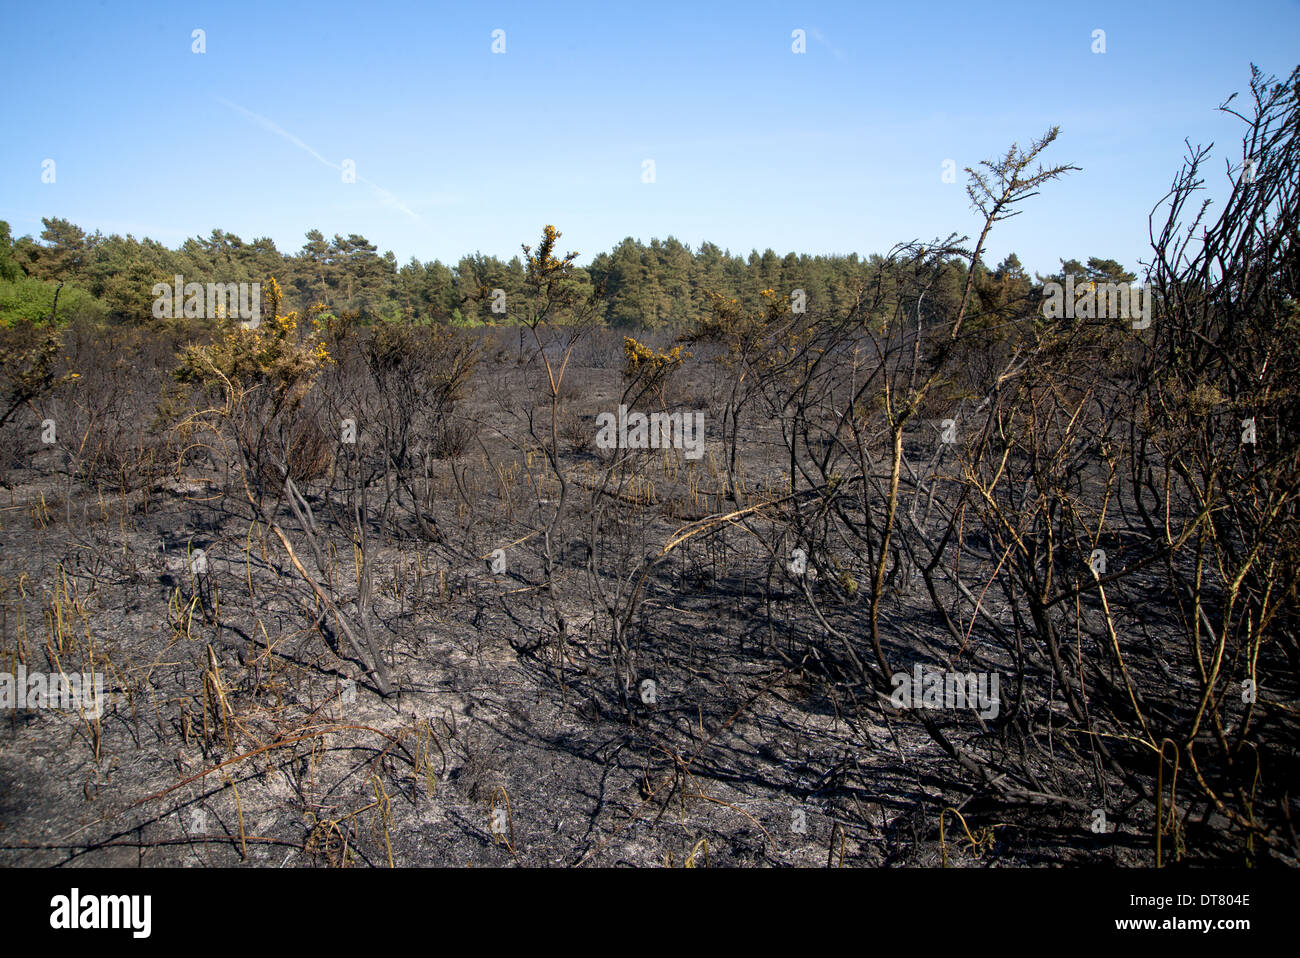 Aftermath of fire on heathland caused by either carelessness or arson, Ashdown Forest, East Sussex, England, June - Stock Image